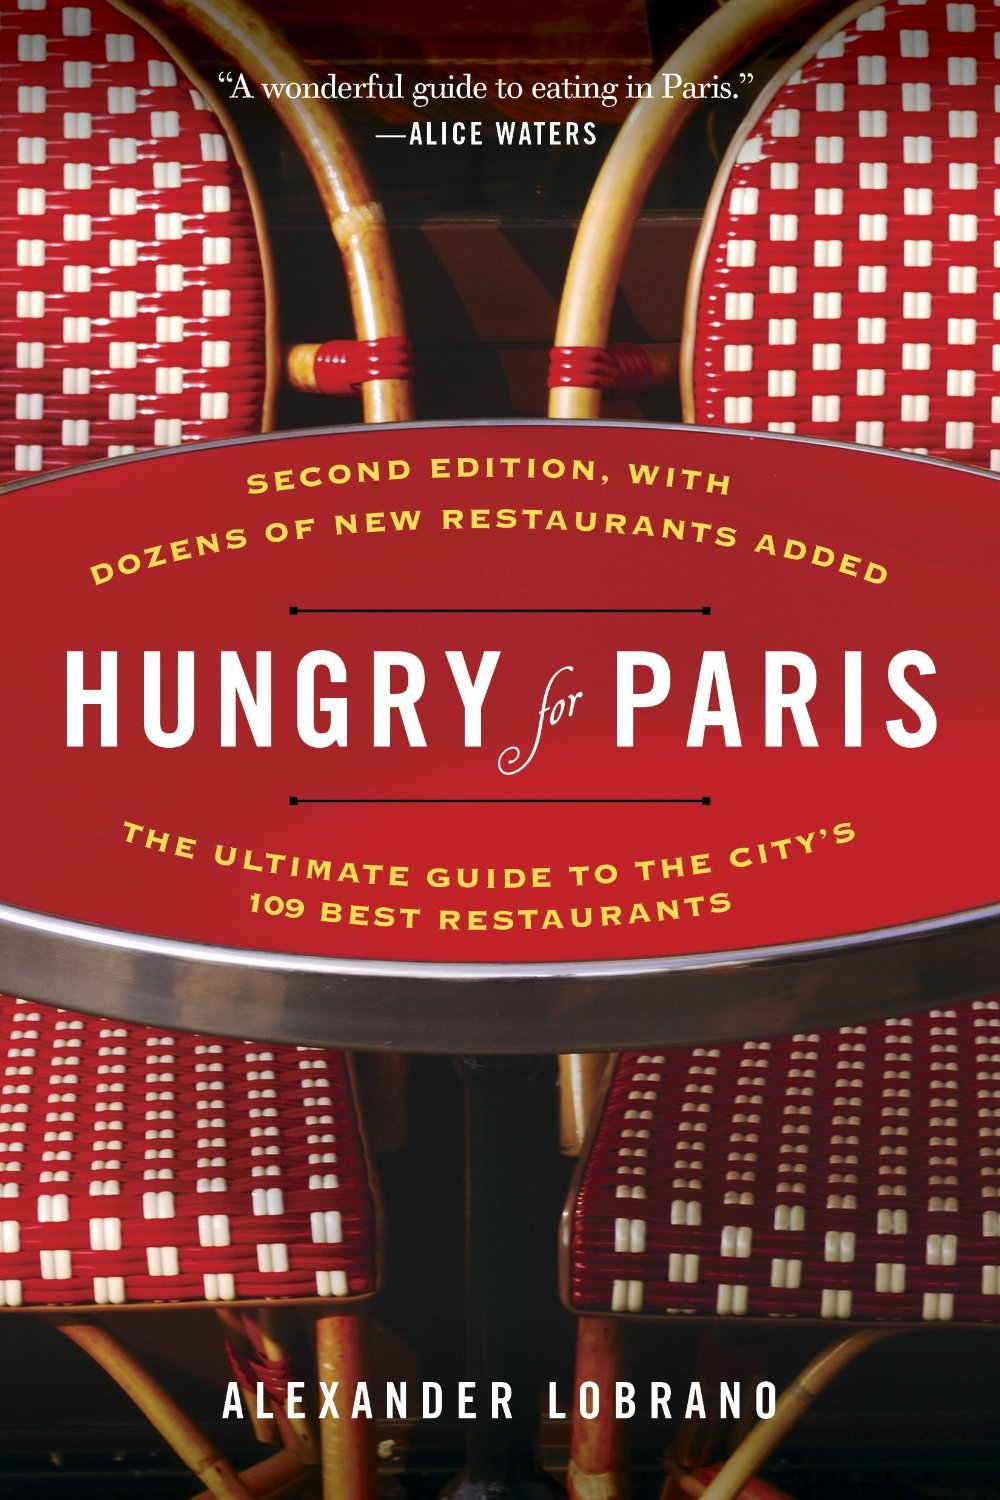 Two Delicious Dining Guides to Paris - David Lebovitz